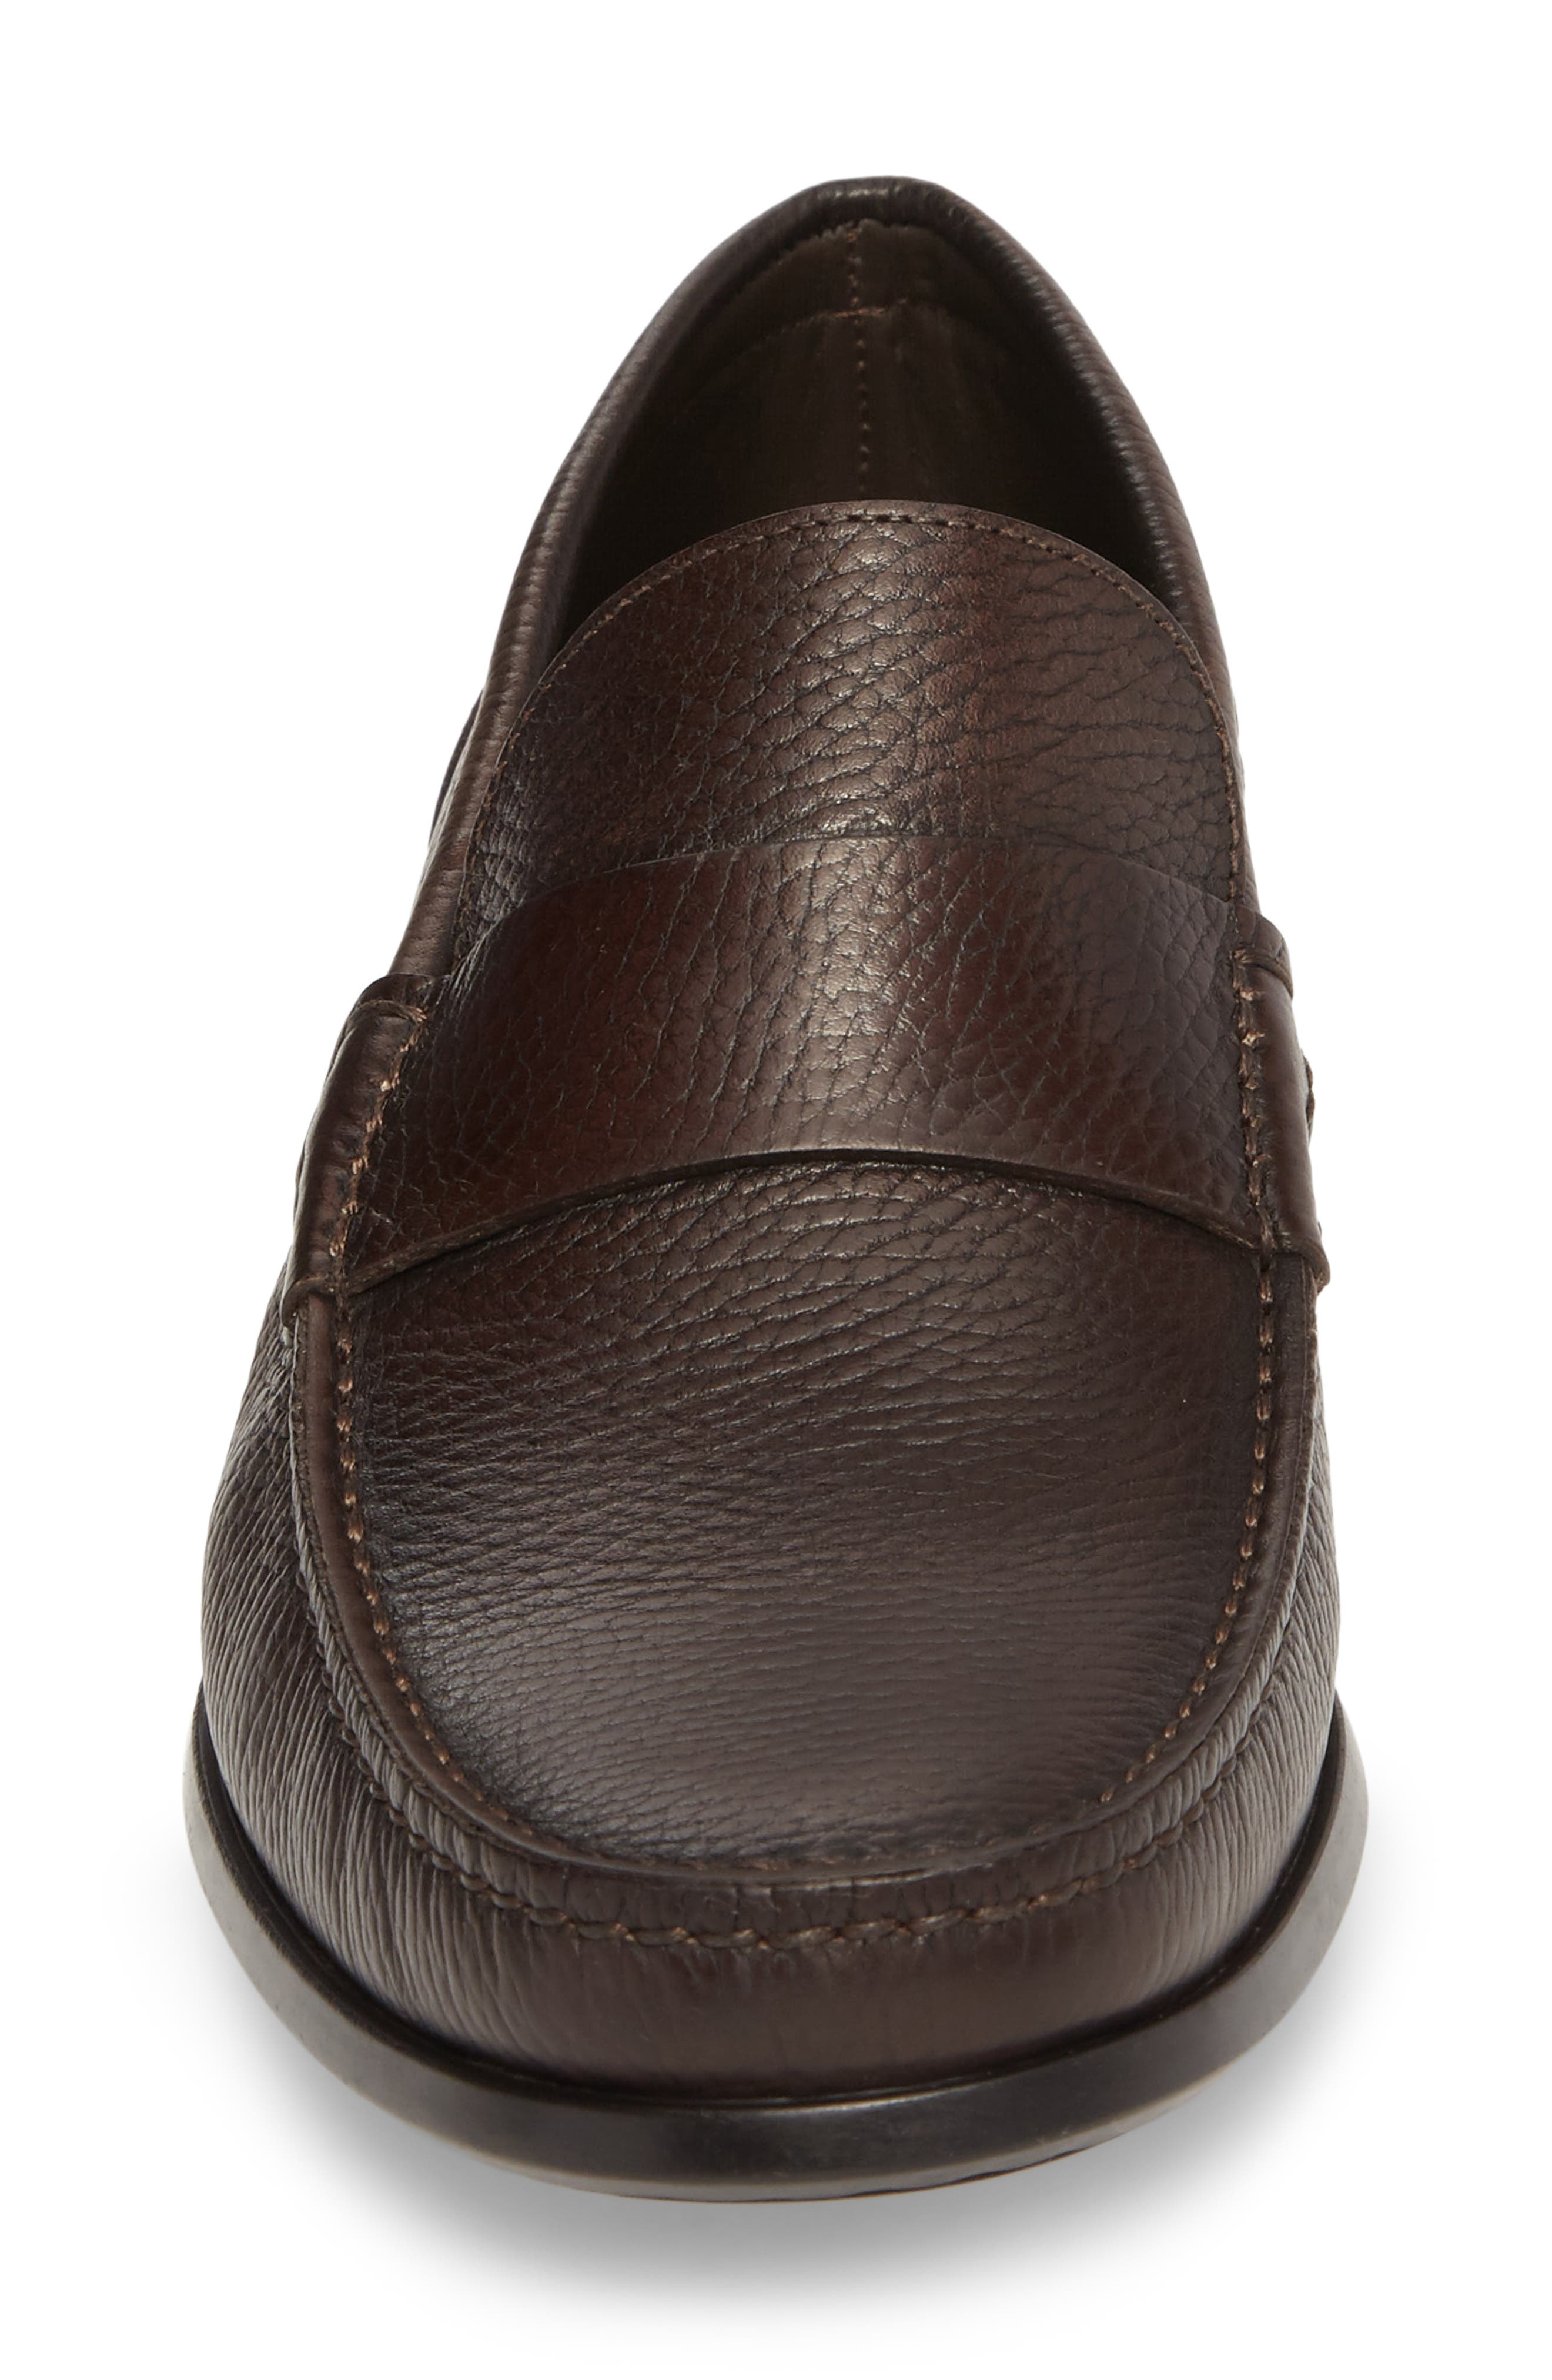 Savona Loafer,                             Alternate thumbnail 4, color,